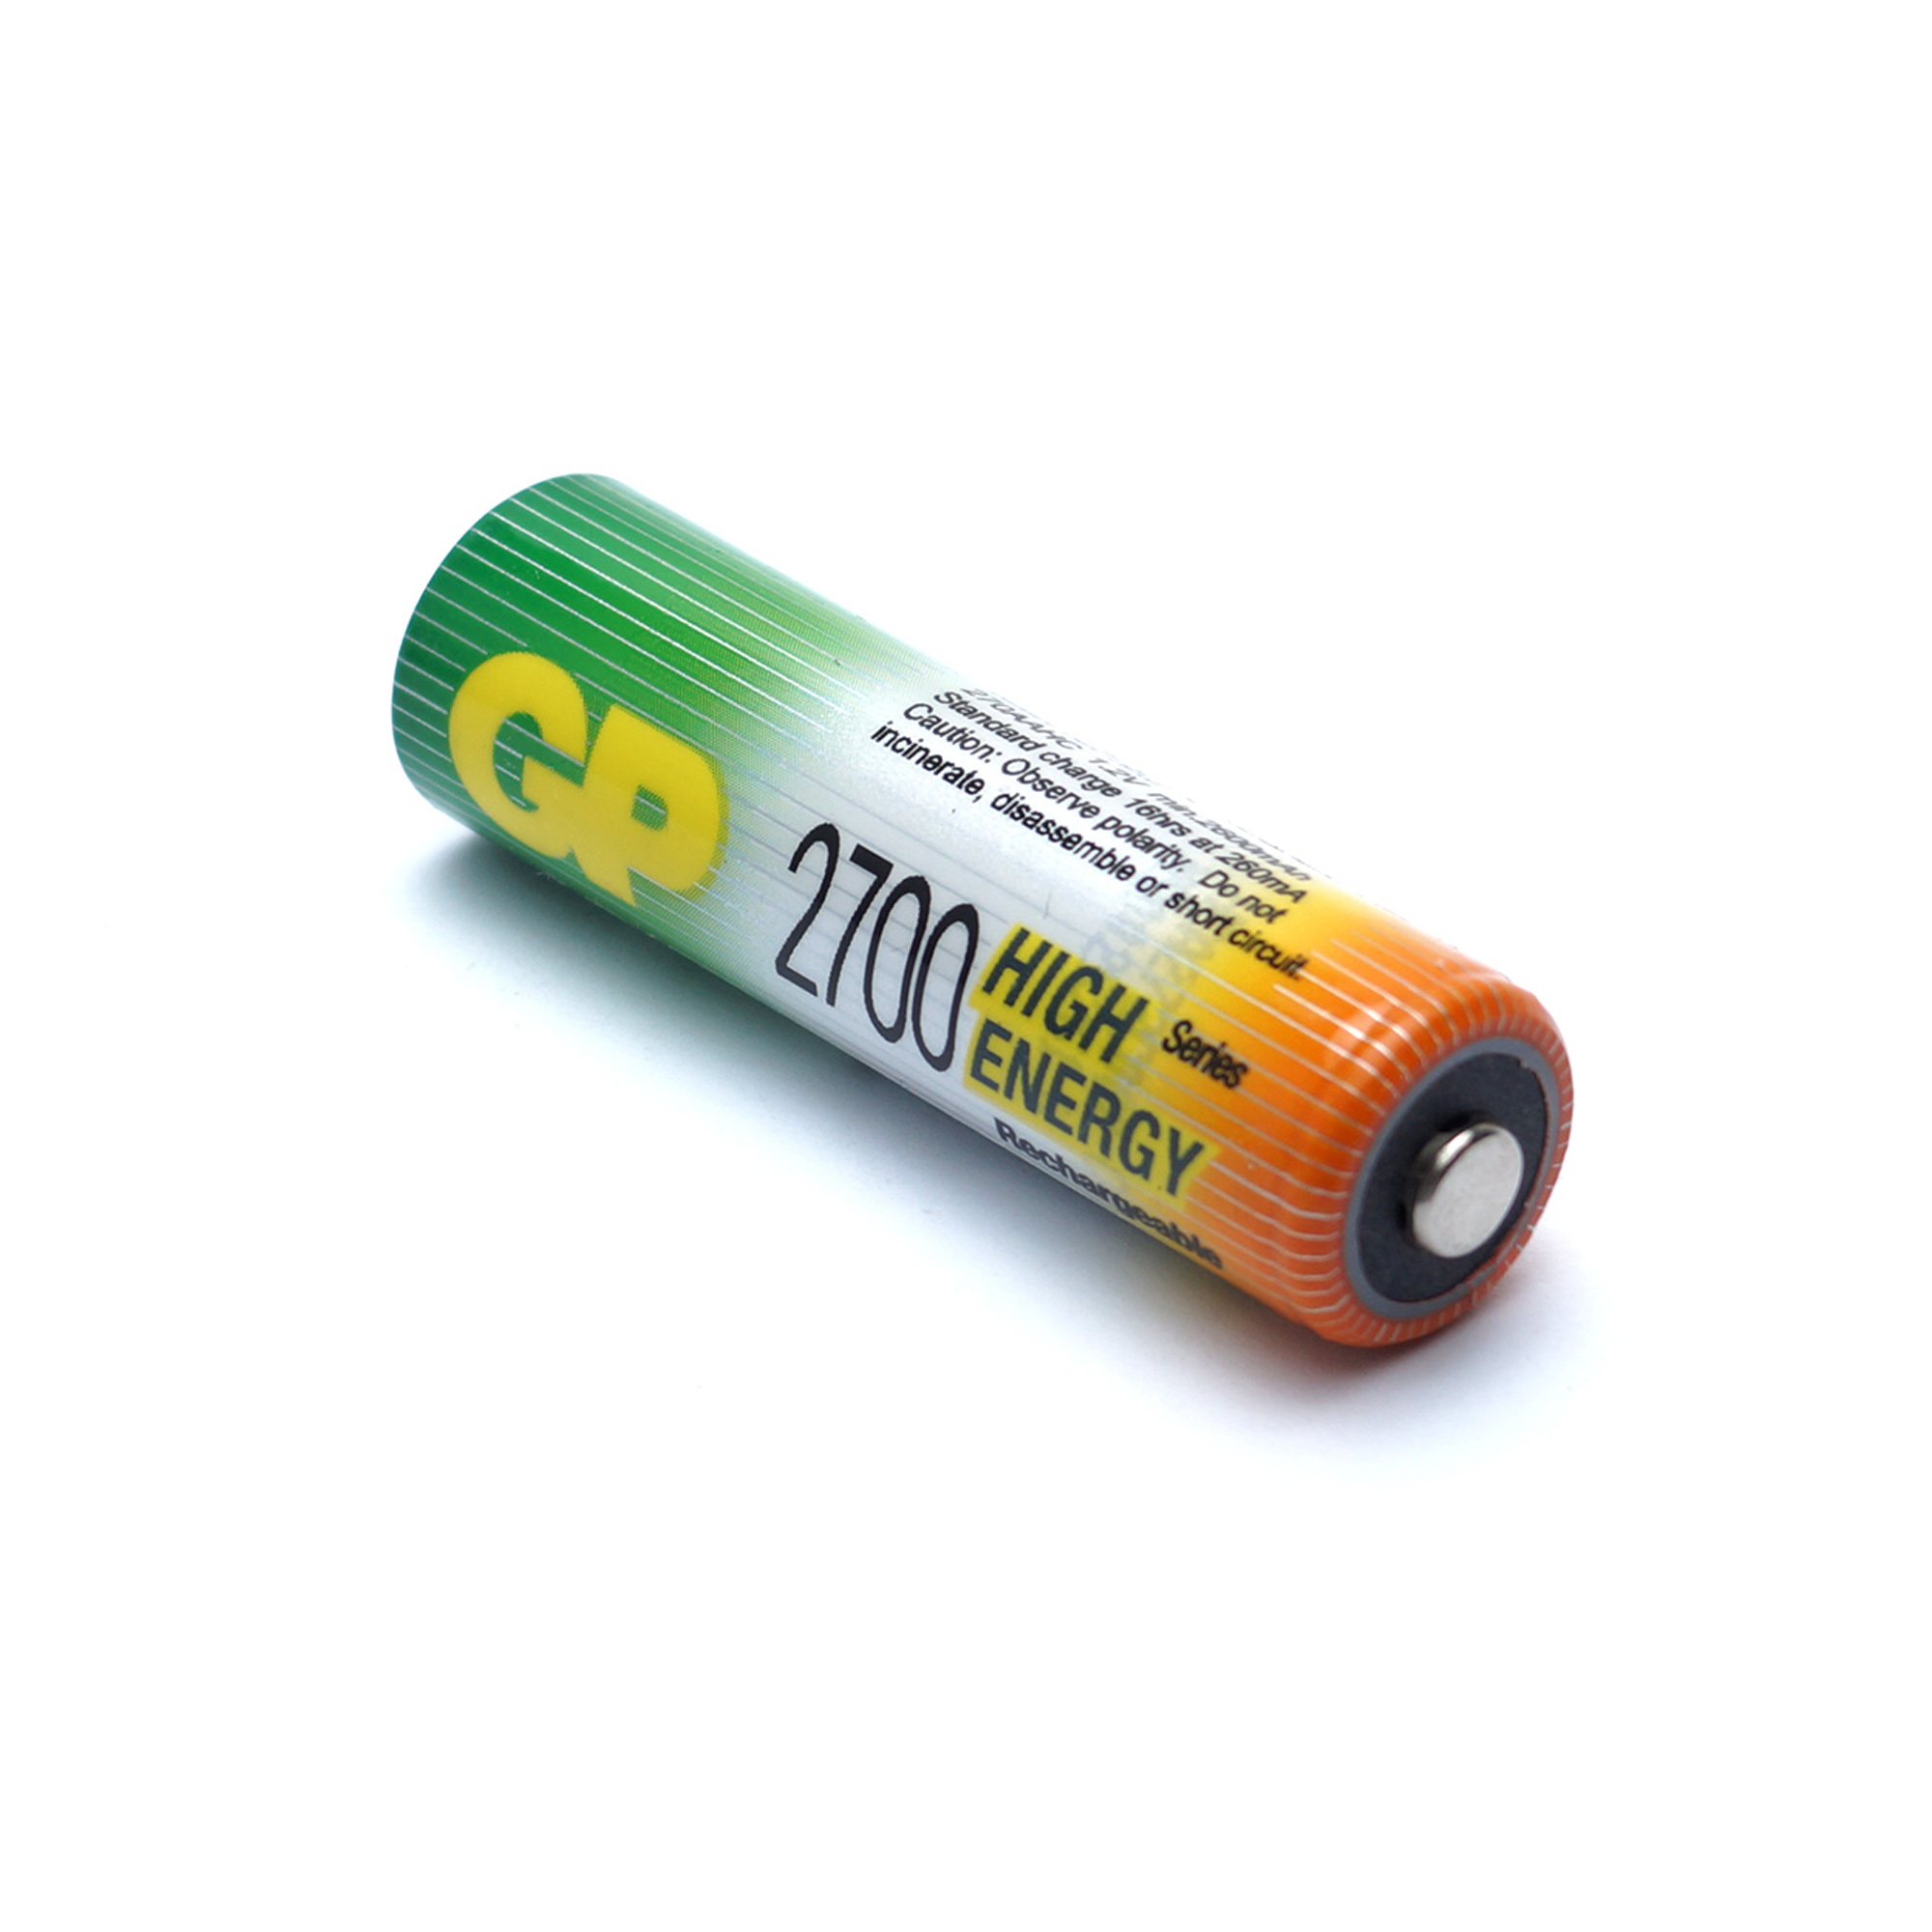 2700-Gp-high-energy-rechargeable